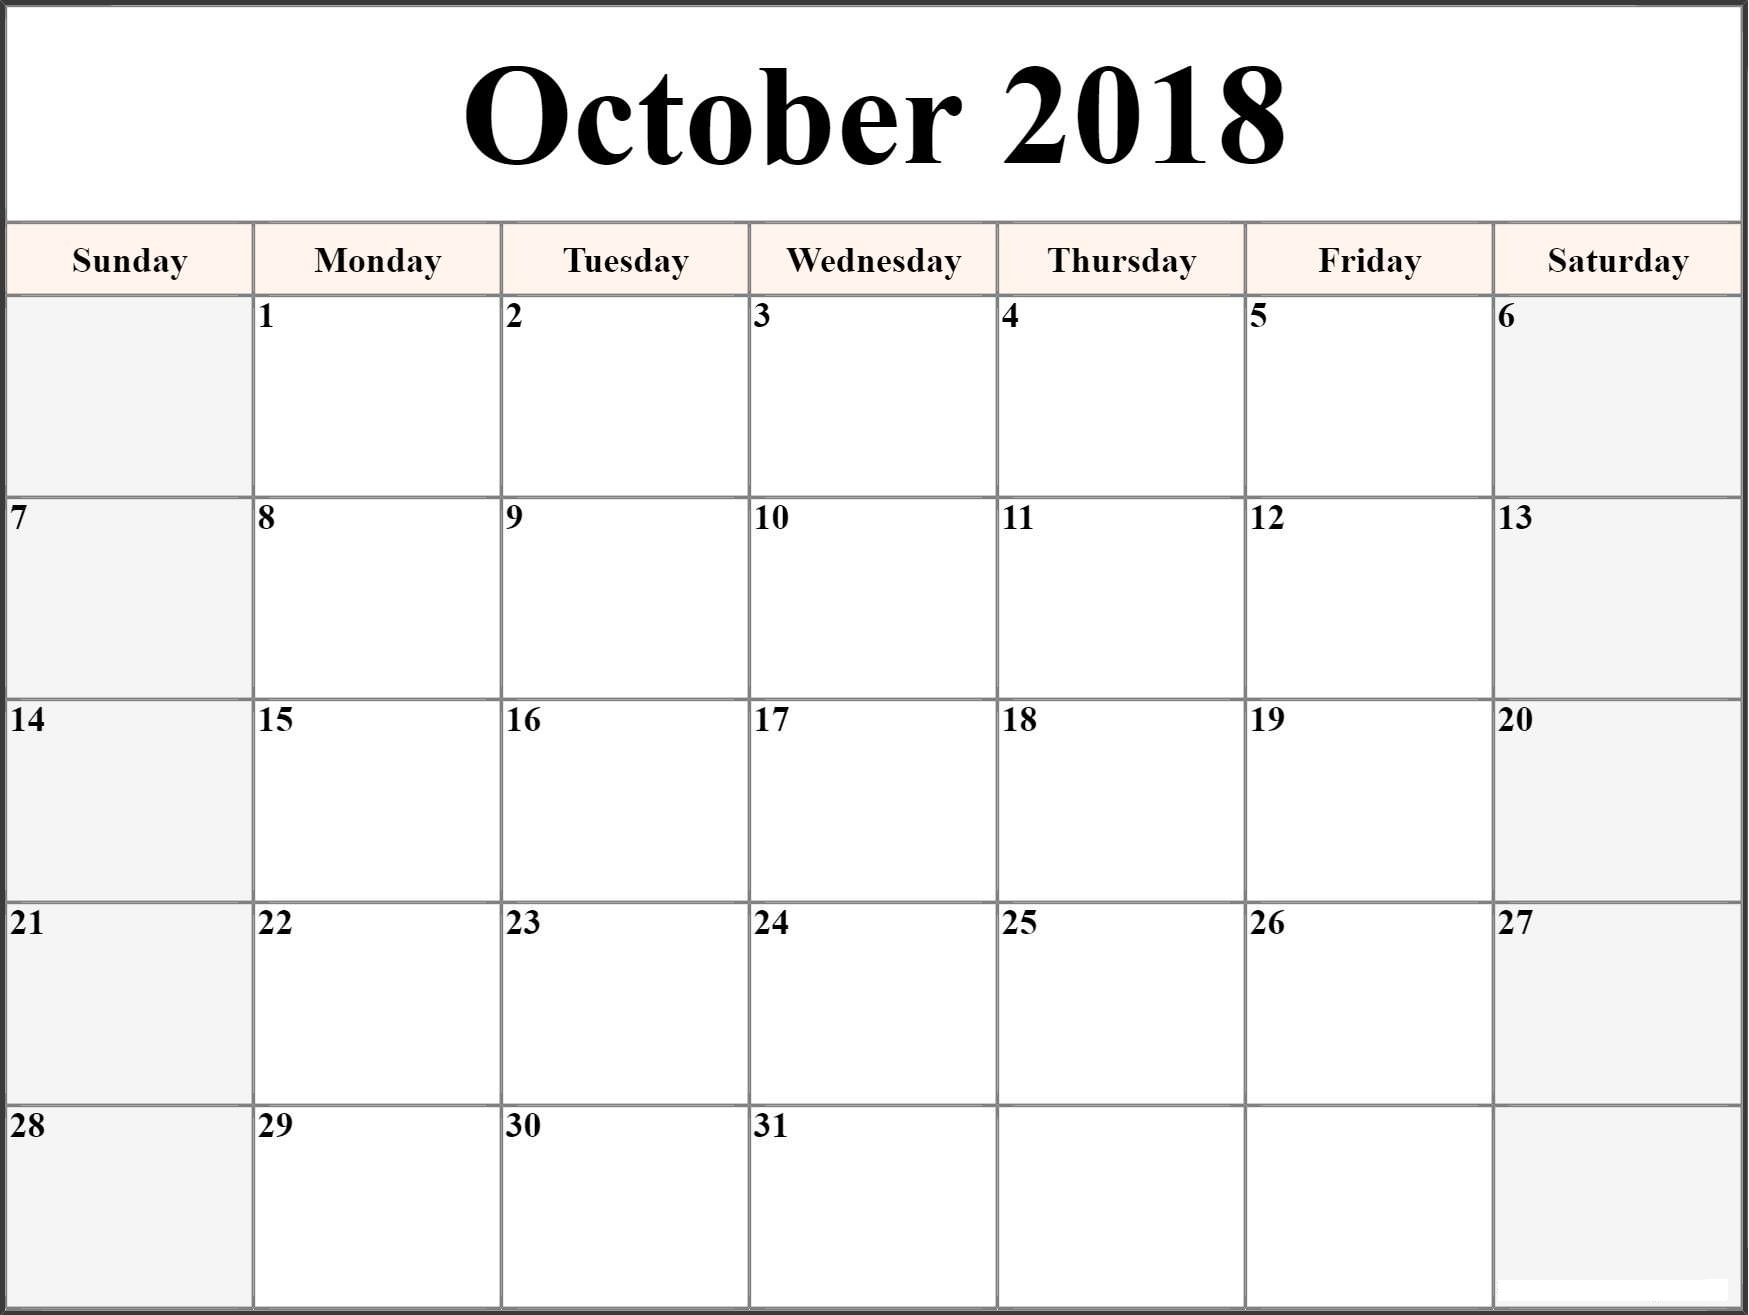 October 2018 Calendar Printable Excel